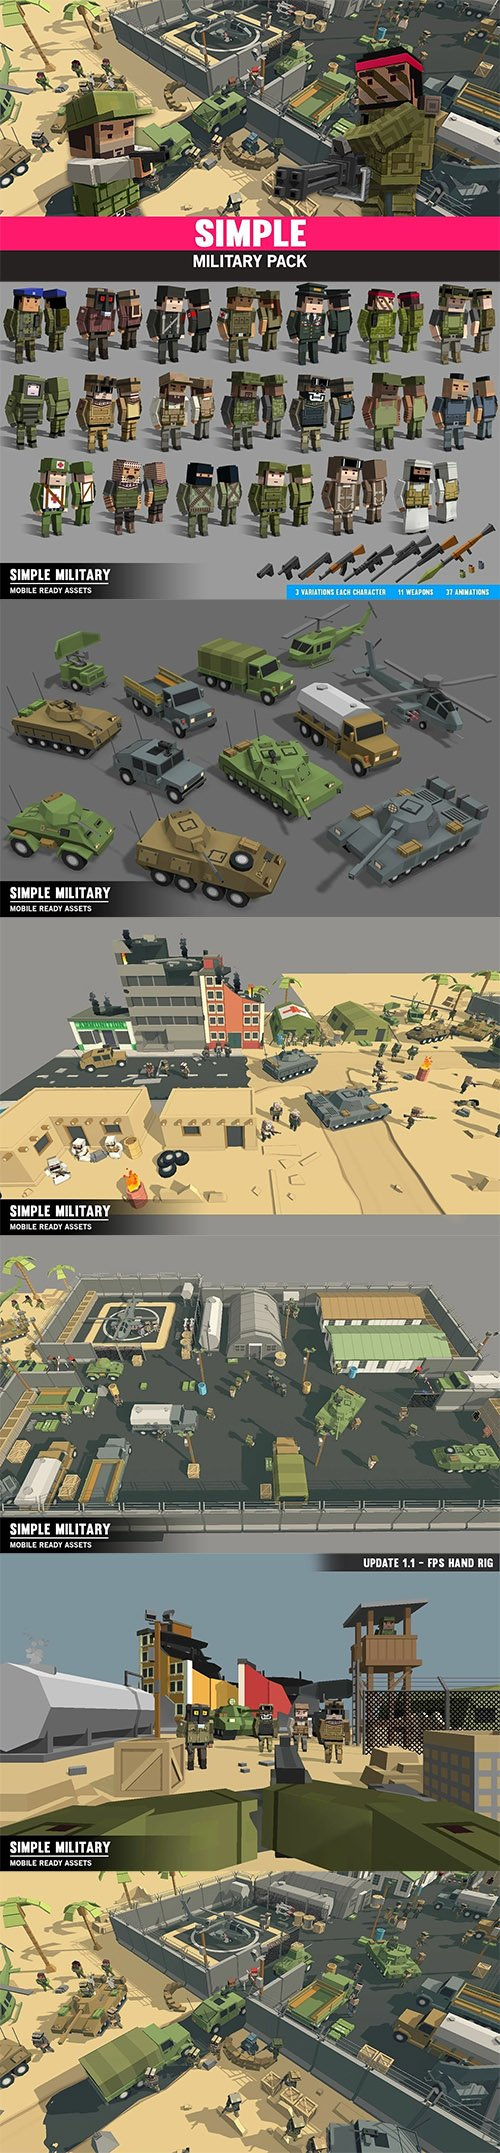 Simple Military - Cartoon Assets Low-poly 3D model